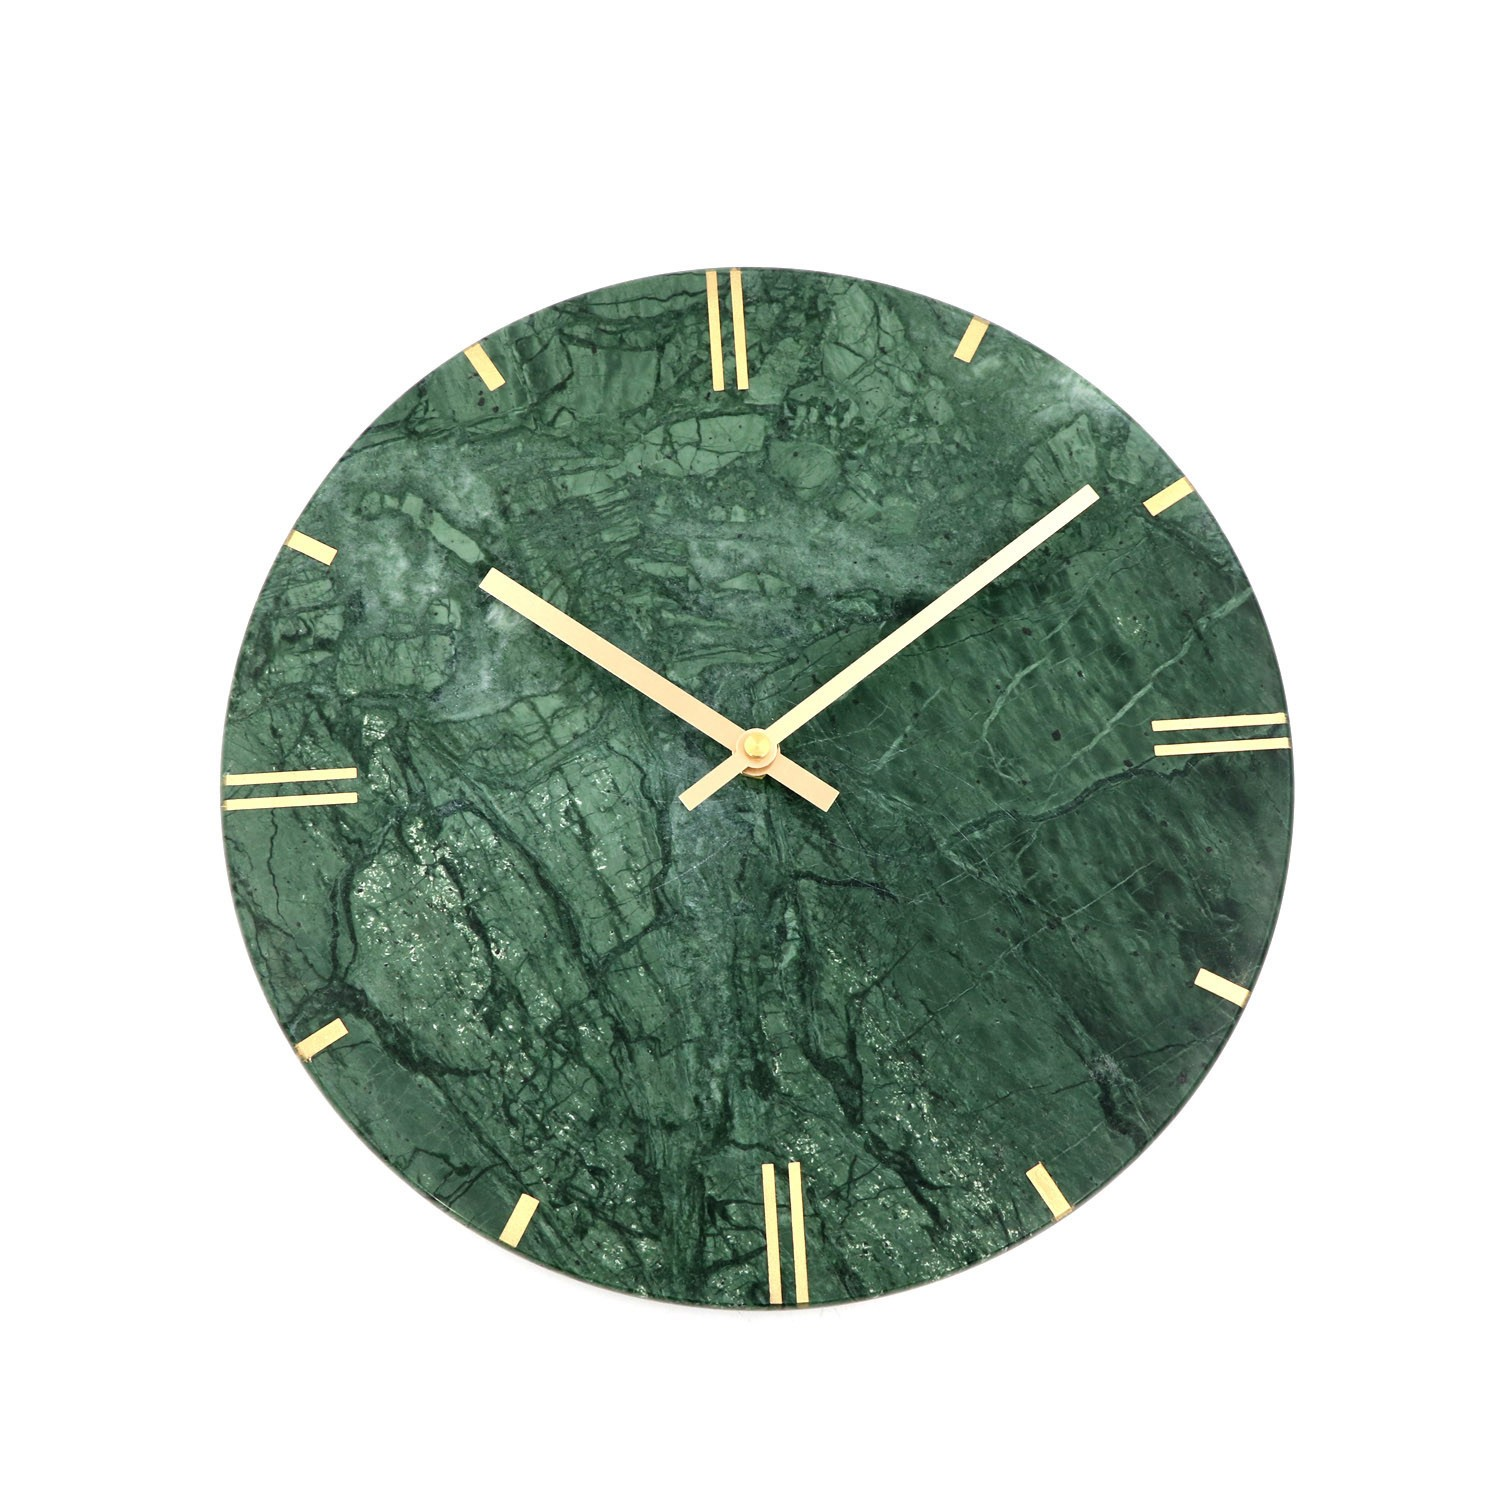 Home Decoration Wall Clock Mute Manufacturers, Home Decoration Wall Clock Mute Factory, Supply Home Decoration Wall Clock Mute